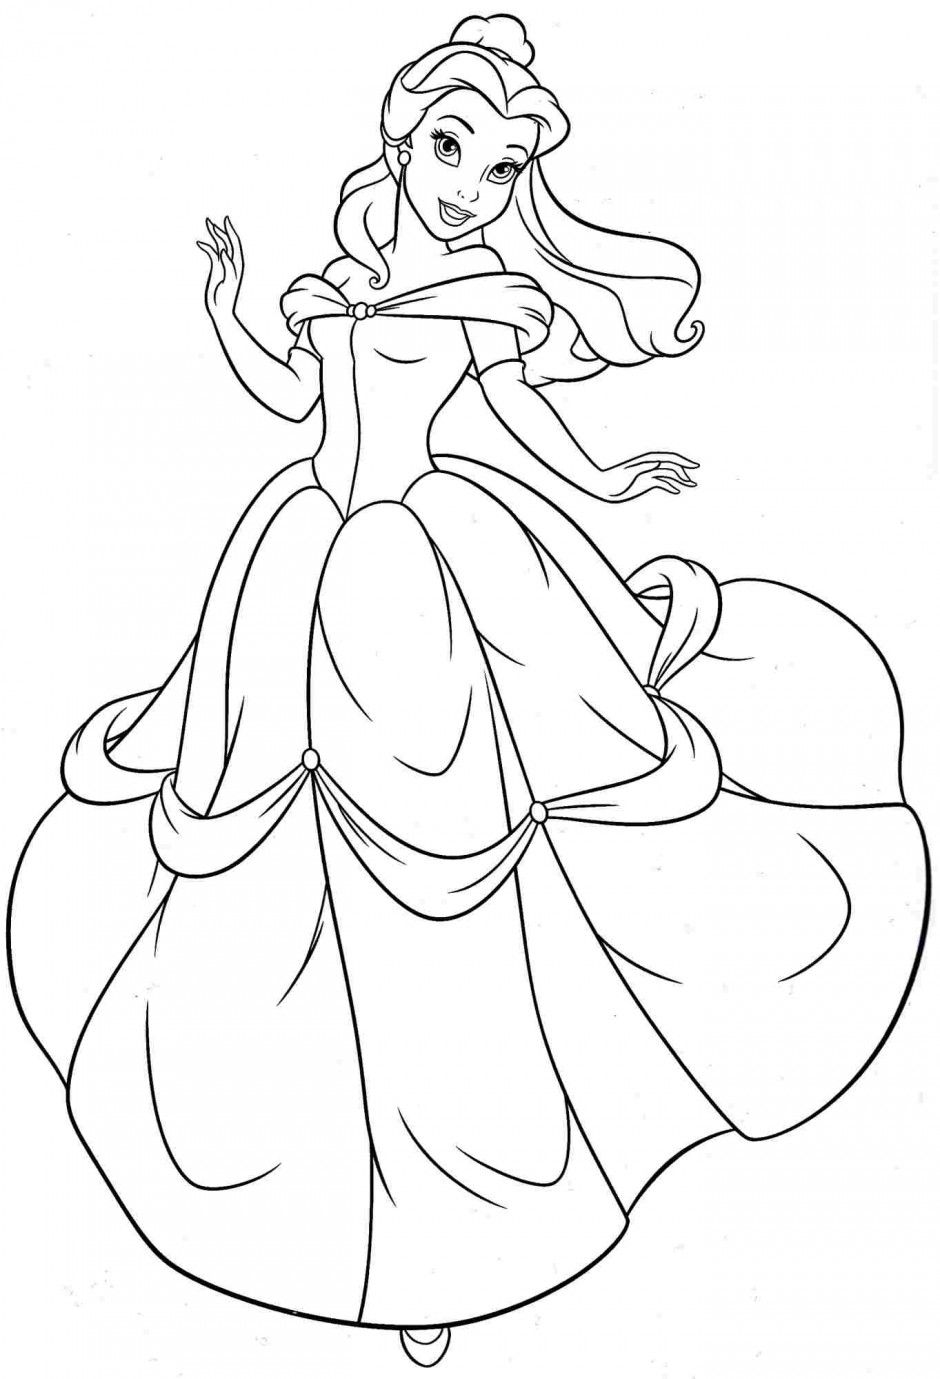 Free Printable Belle Coloring Pages For Kids Disney Princess Coloring Pages Tinkerbell Coloring Pages Disney Princess Colors